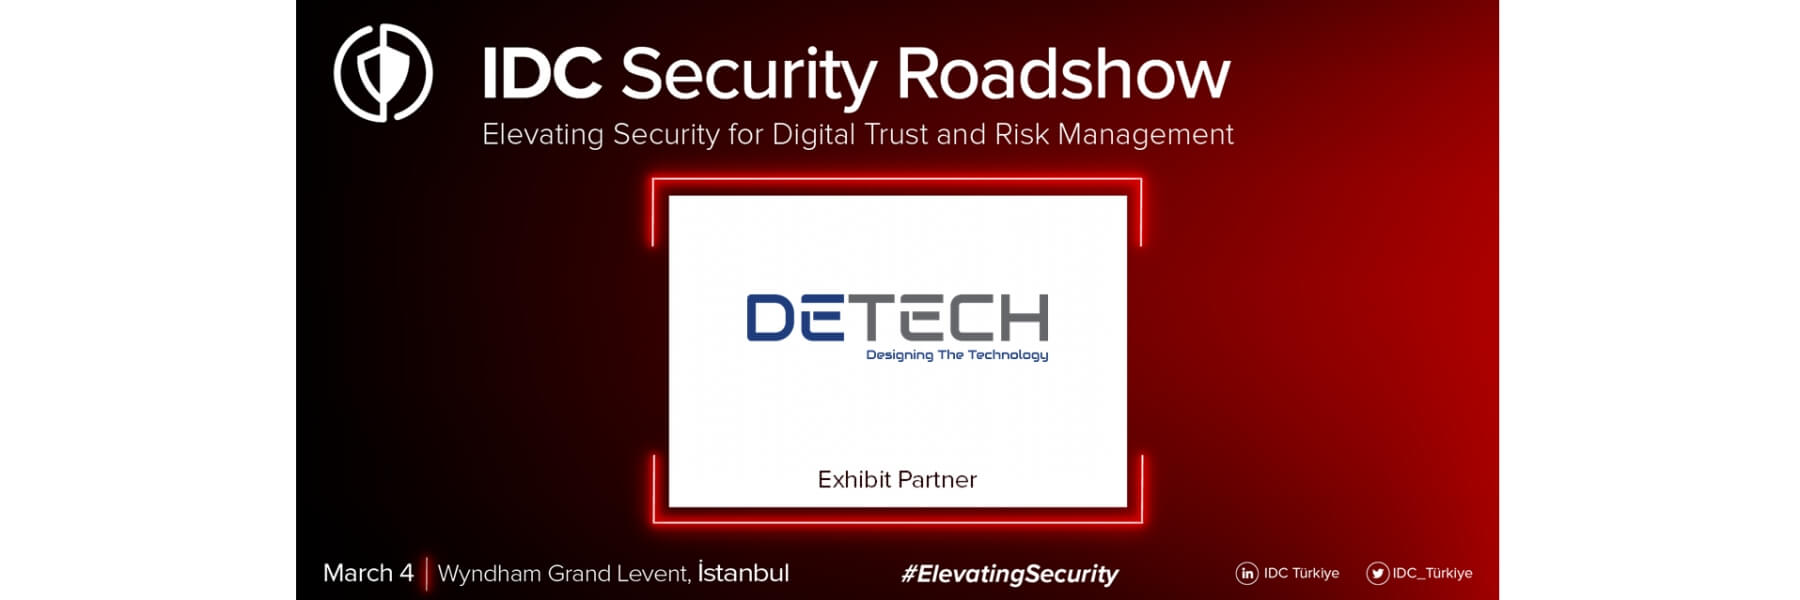 IDC IT Security Roadshow 2020